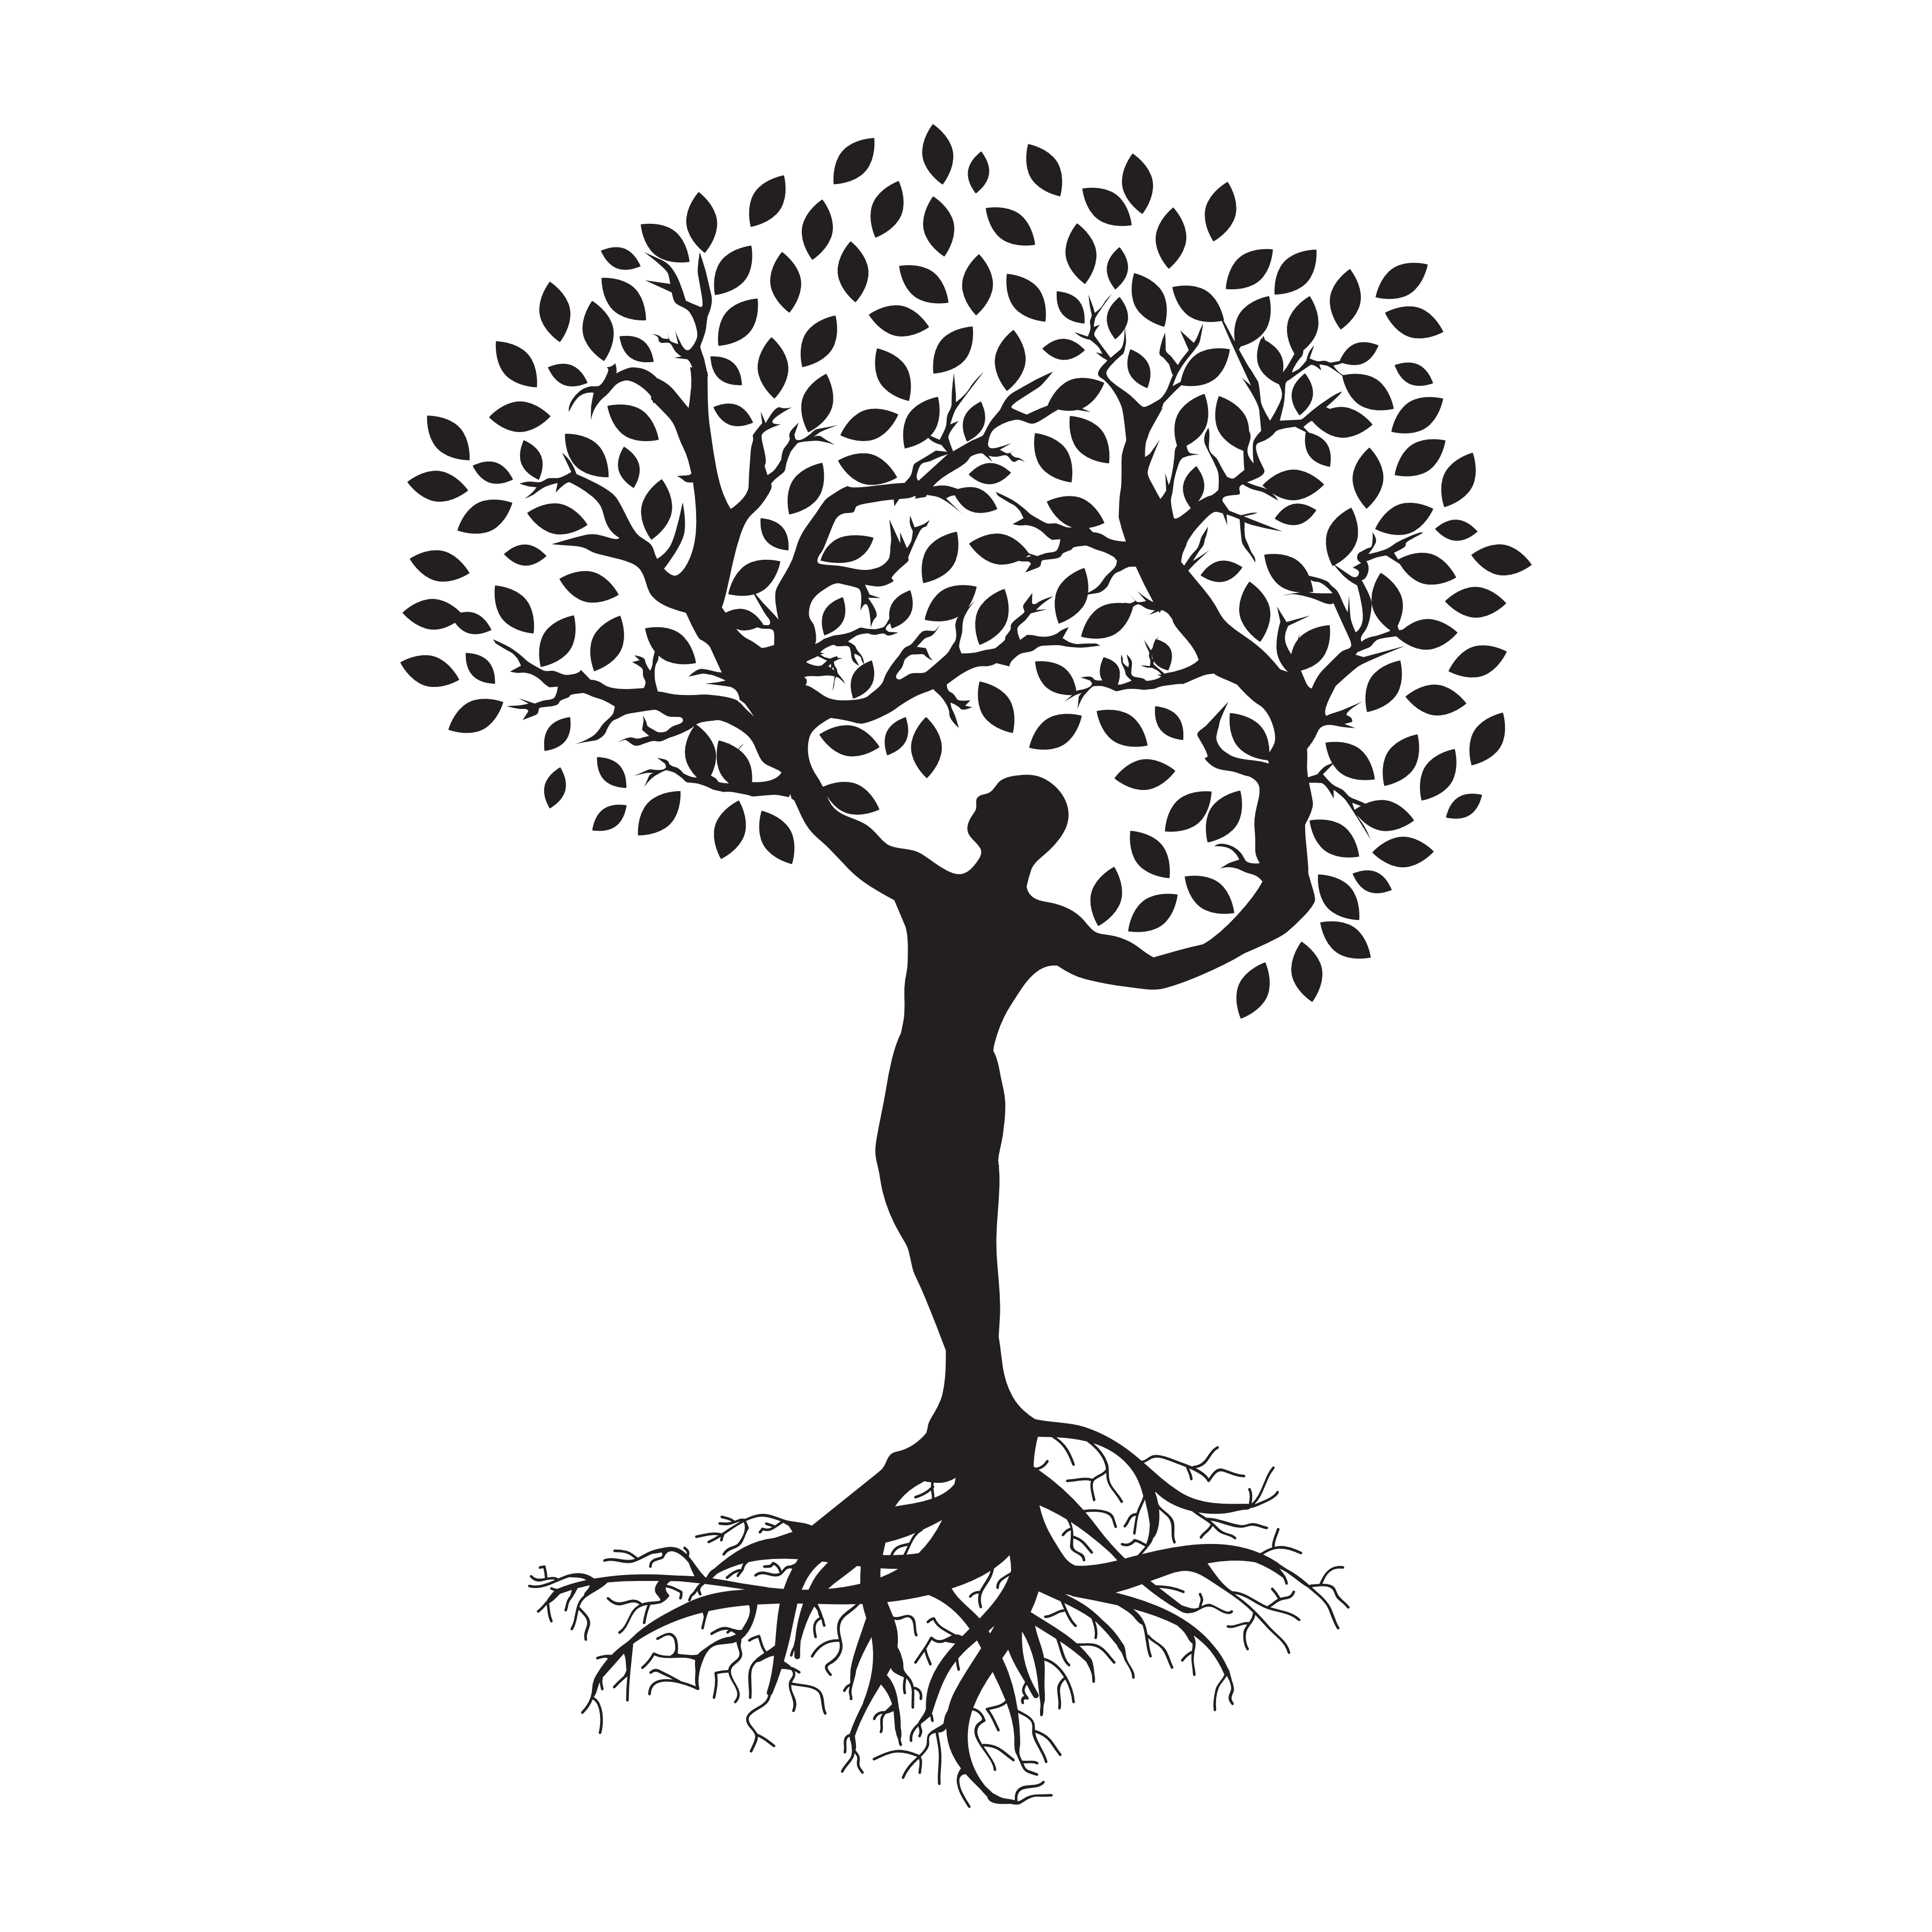 Our body is like a tree